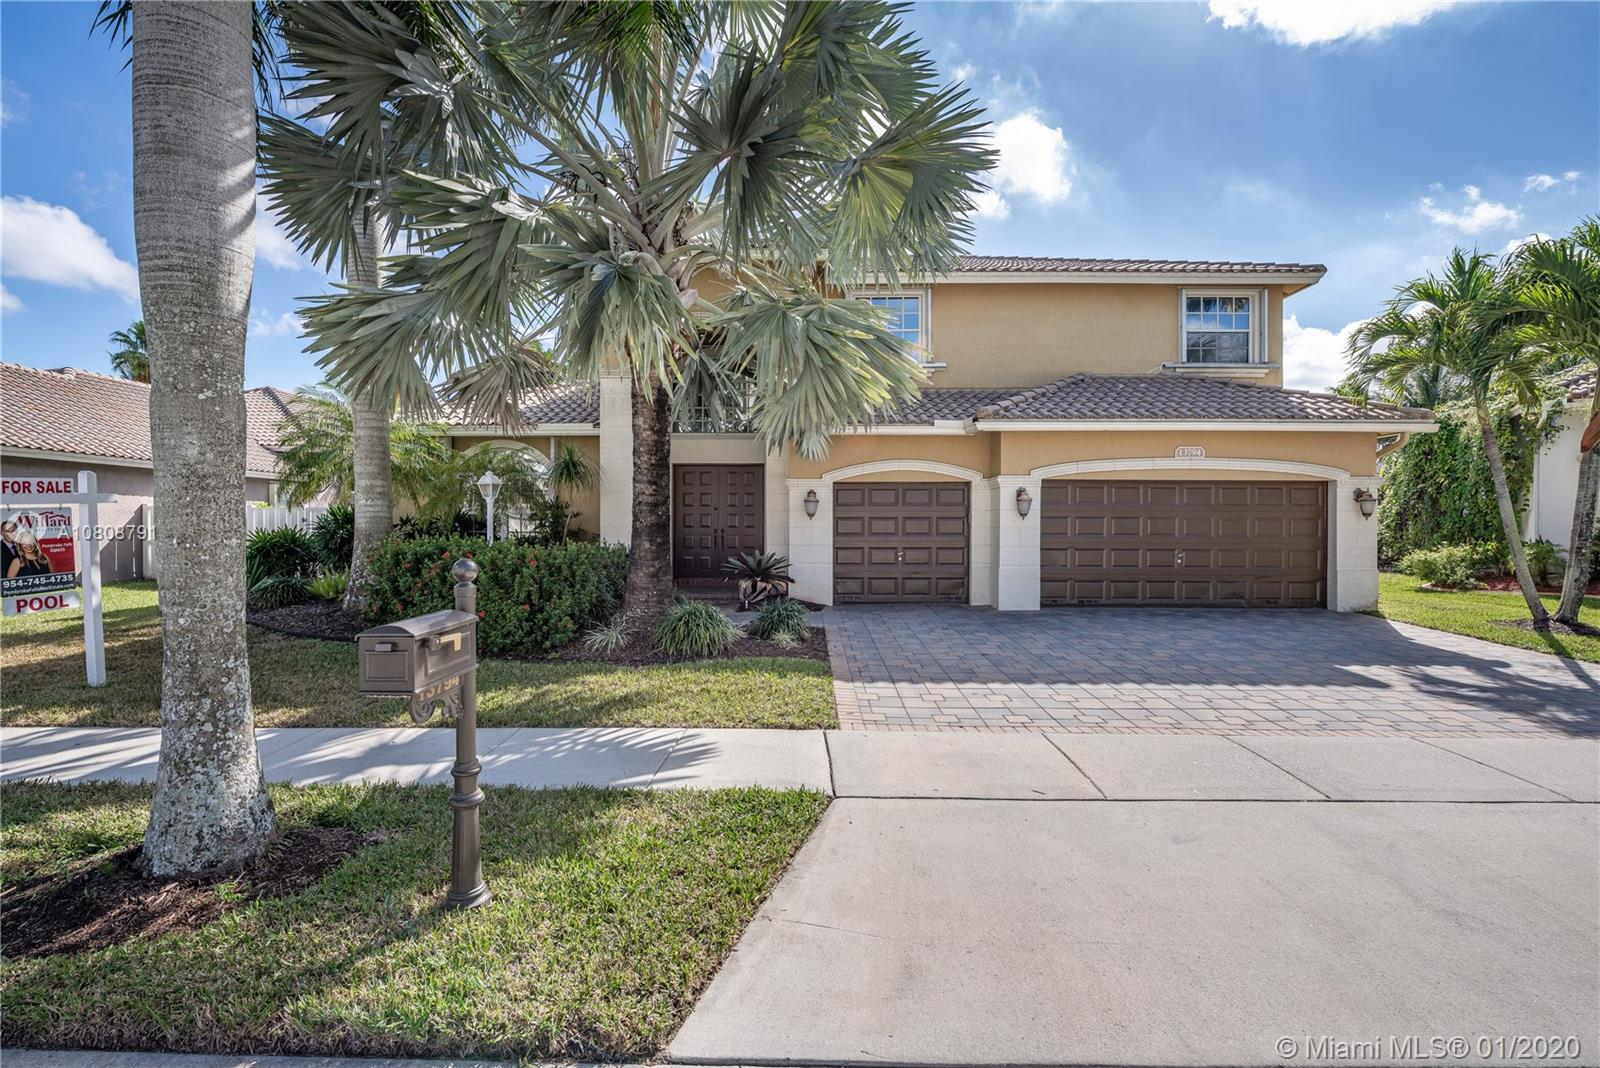 ***Contemporary, 5 Bed, 5 Bath, RADCLIFFE  POOL HOME in Exclusive Crystal Harbour@Pembroke Falls: Grand Foyer Entry, Formal Dining/Living, Open Kitchen, Cherry Cabinetry, Granite, SS Appliances, Gas Range, Double Oven, Island, Breakfast Nook & Serving Bar, Spacious Master Suite w/Sitting Area, His & Hers Walk-in Closets, Dual Vanities, Roman Soaking Tub, Neutral Tile/Wood Flooring, Soaring Ceilings, Custom Mill-work, Large Loft/Game Room, Expansive Covered Patio, Refreshing POOL & SPA w/Sun Deck, Exotic Water Feature & Slide, Fenced Grounds, Accordion Shutters & Tropical Landscaping. Resort Style Club House: Heated Pool, Spa, Gym, Tennis, Basketball, Ballroom, Tot-Lots & Activities Director. HOA Includes: Cable/Internet/Alarm. Convenient to Shopping, Dining, Entertainment & Schools***